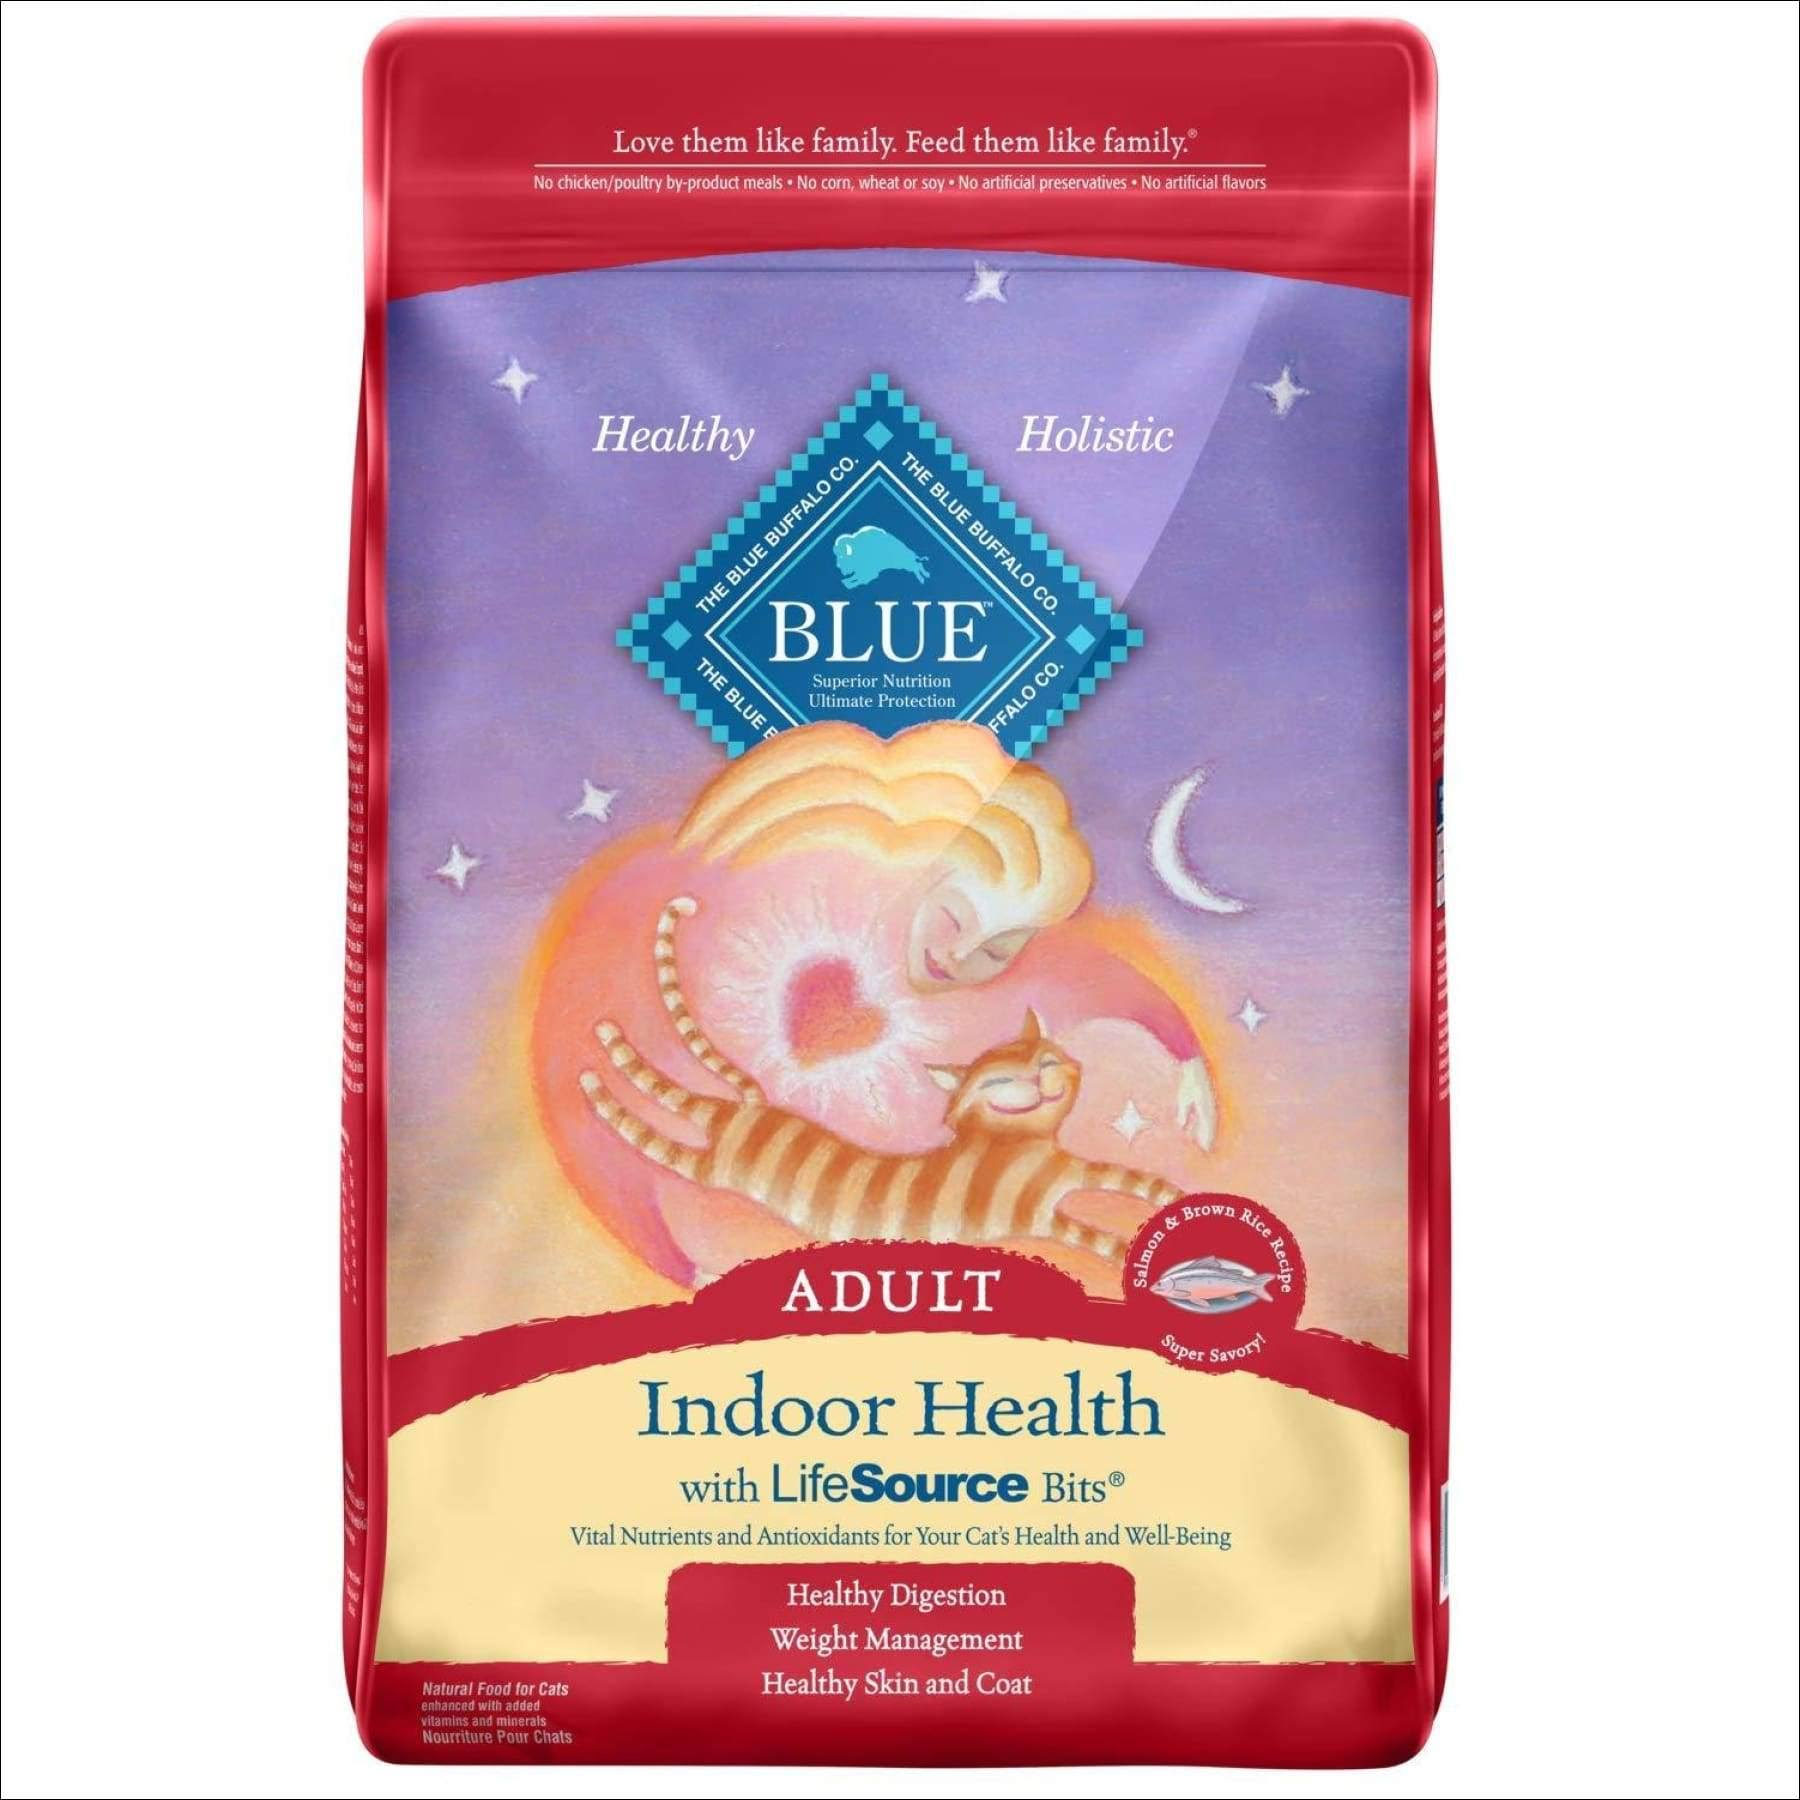 Blue Buffalo Indoor Formula Dry Cat Food - Salmon, 15lb Bag